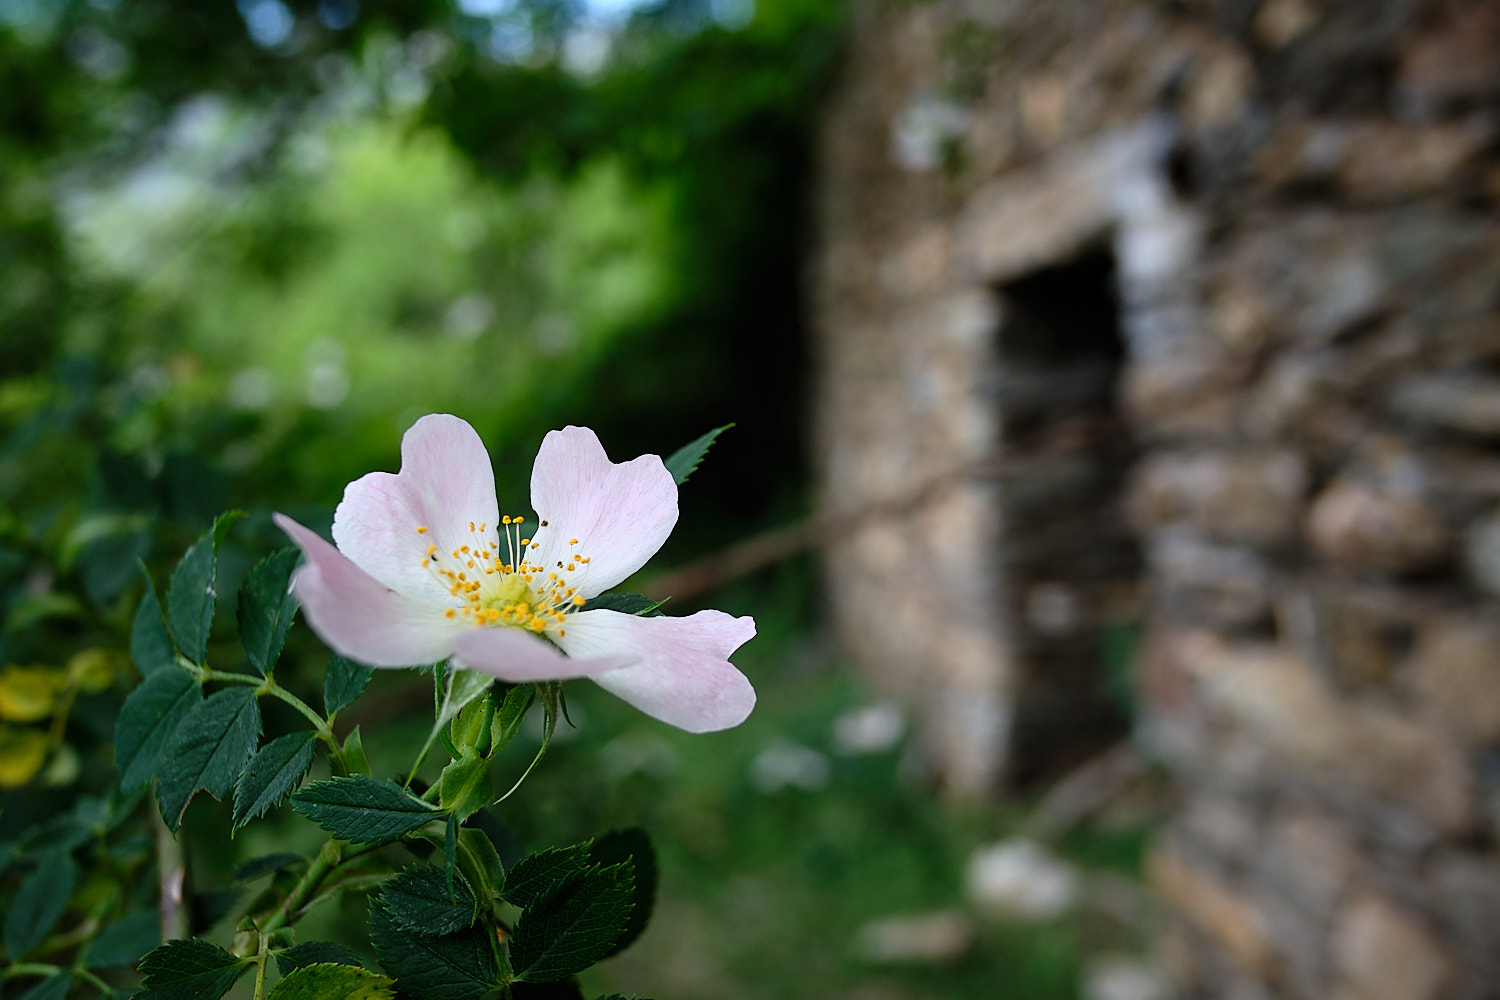 flower in close with ruins in the background up at Saraís (ghost town), Vall de Boí, Pyrenees, Spain